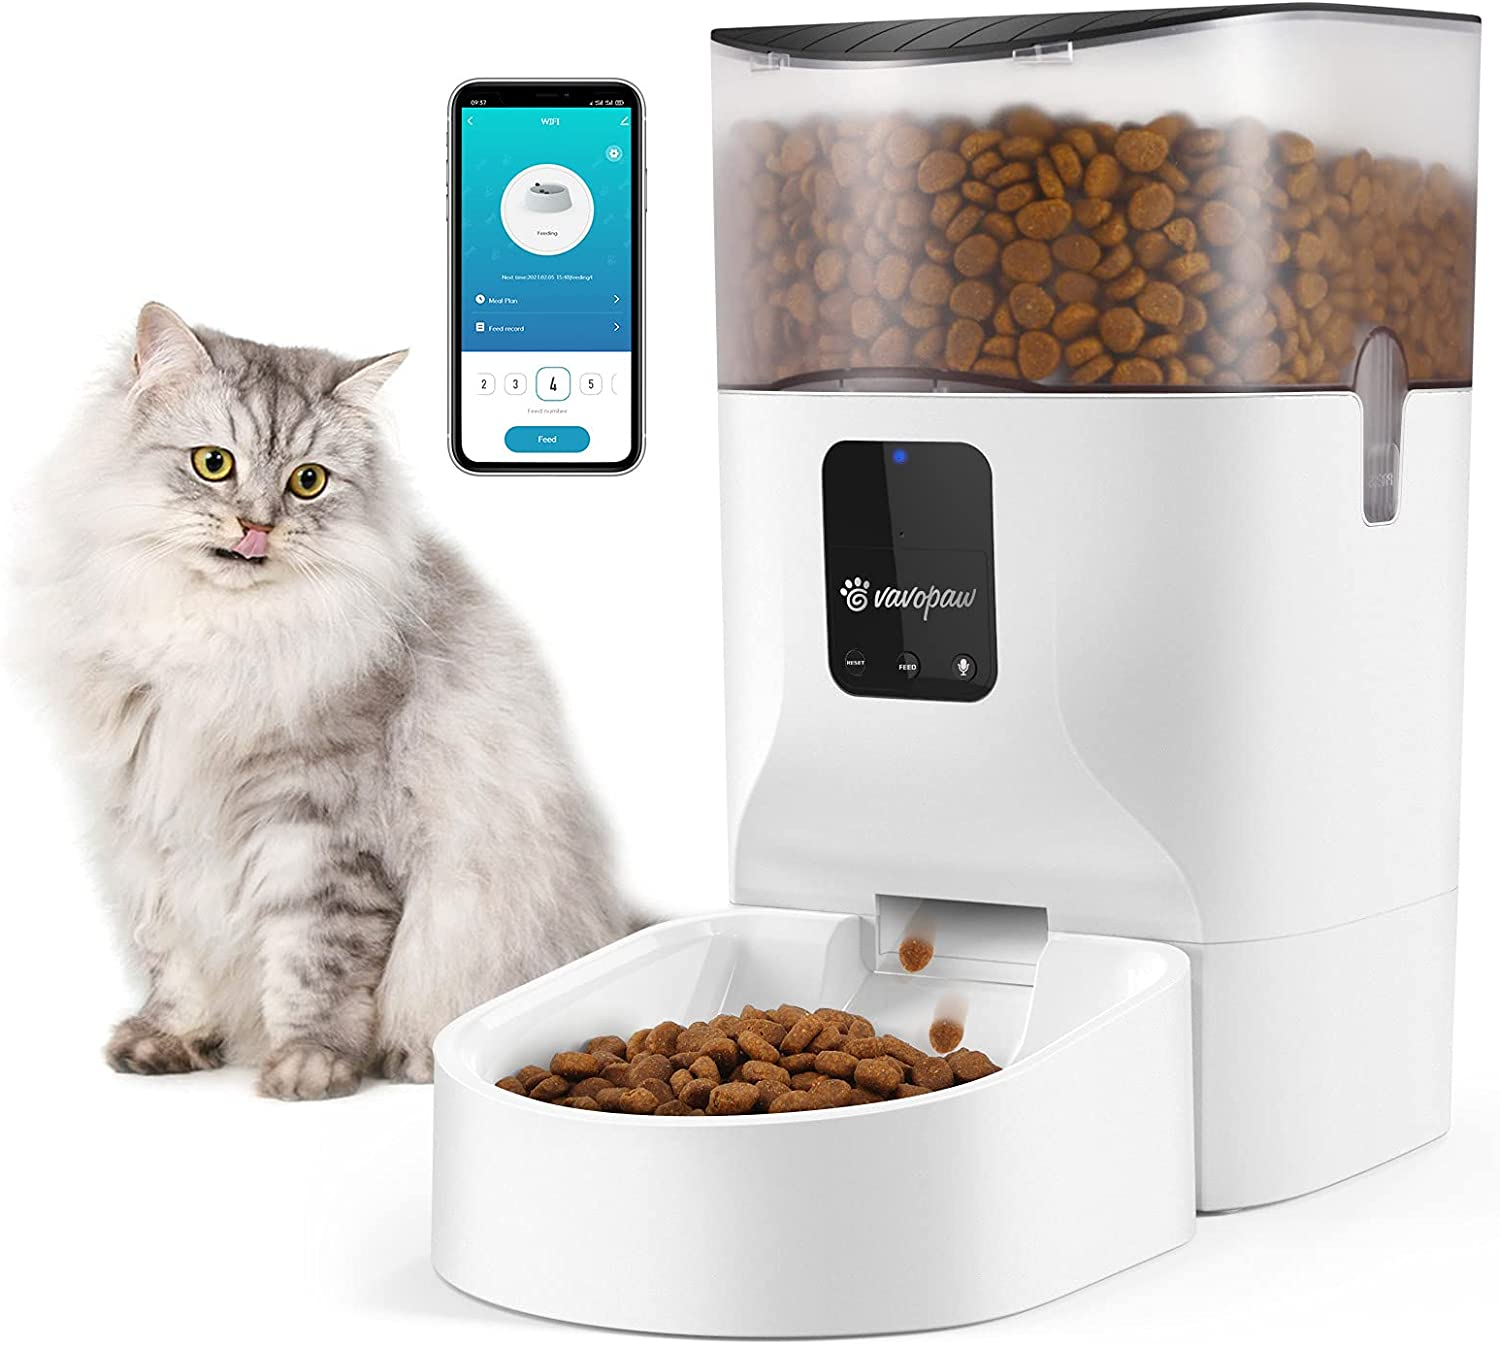 VavoPaw 7L Automatic Cat Feeder Smart Enabled Food Max 69% OFF Max 47% OFF Dispens WiFi